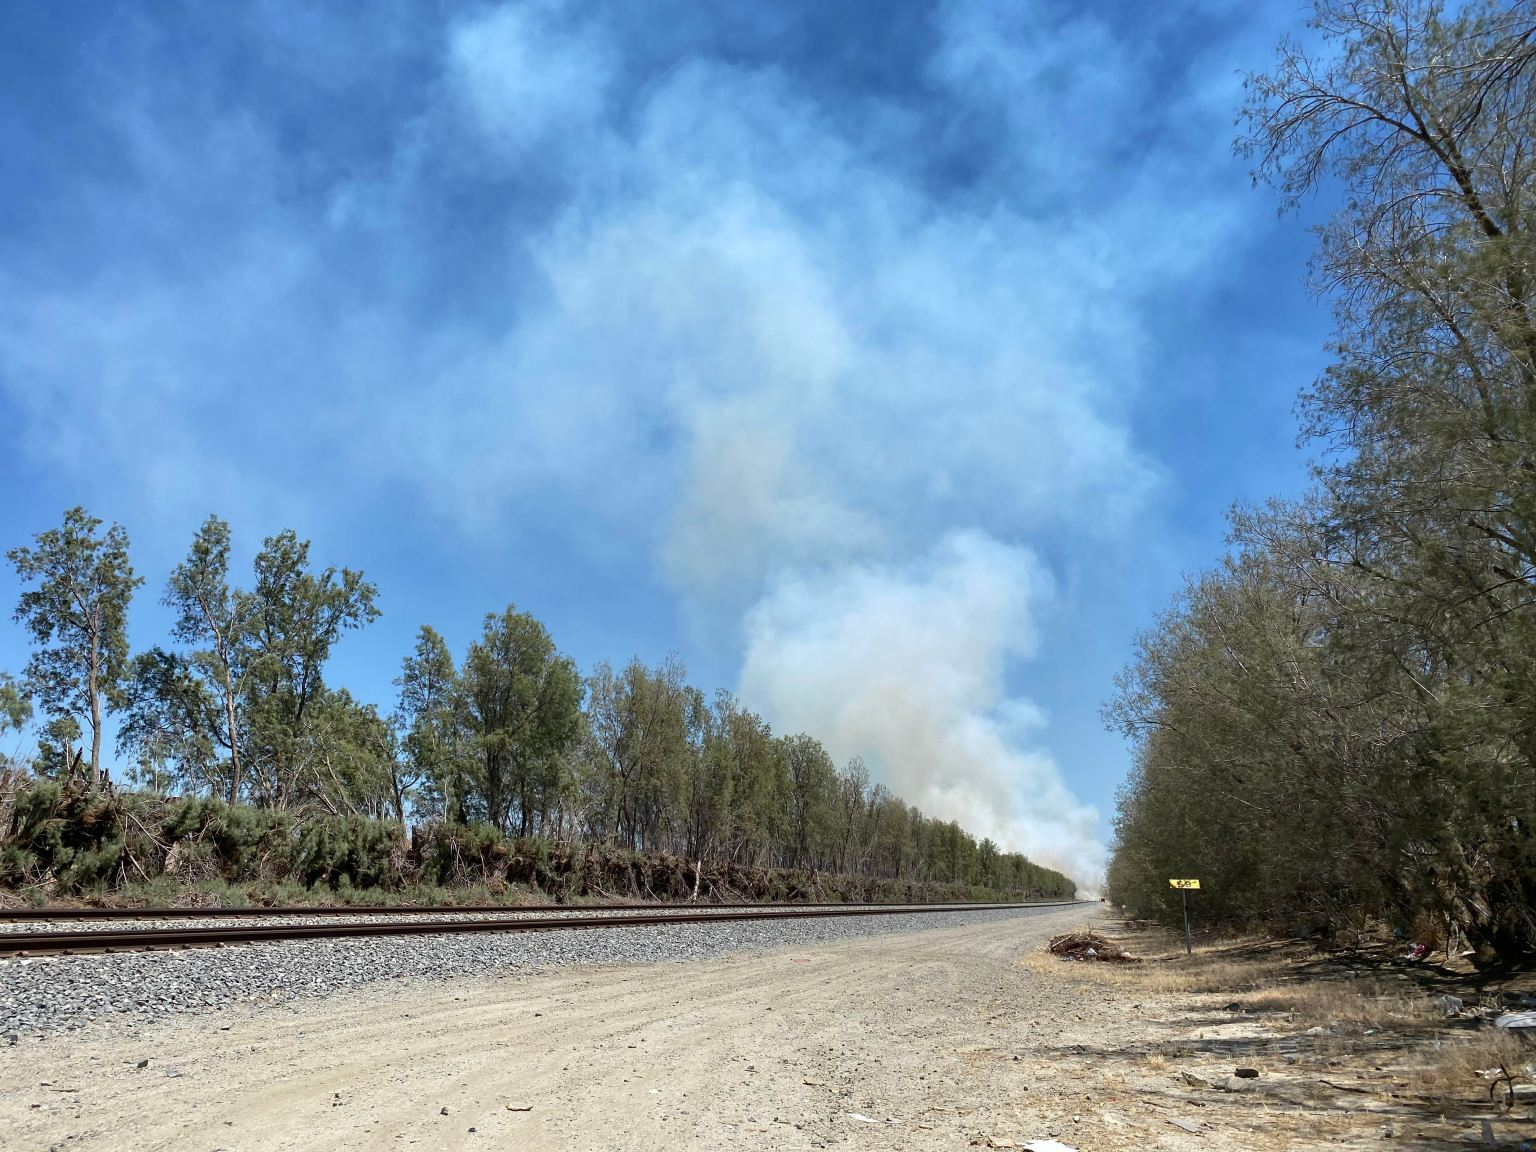 Fire Breaks Out Along I-10 in Cathedral City